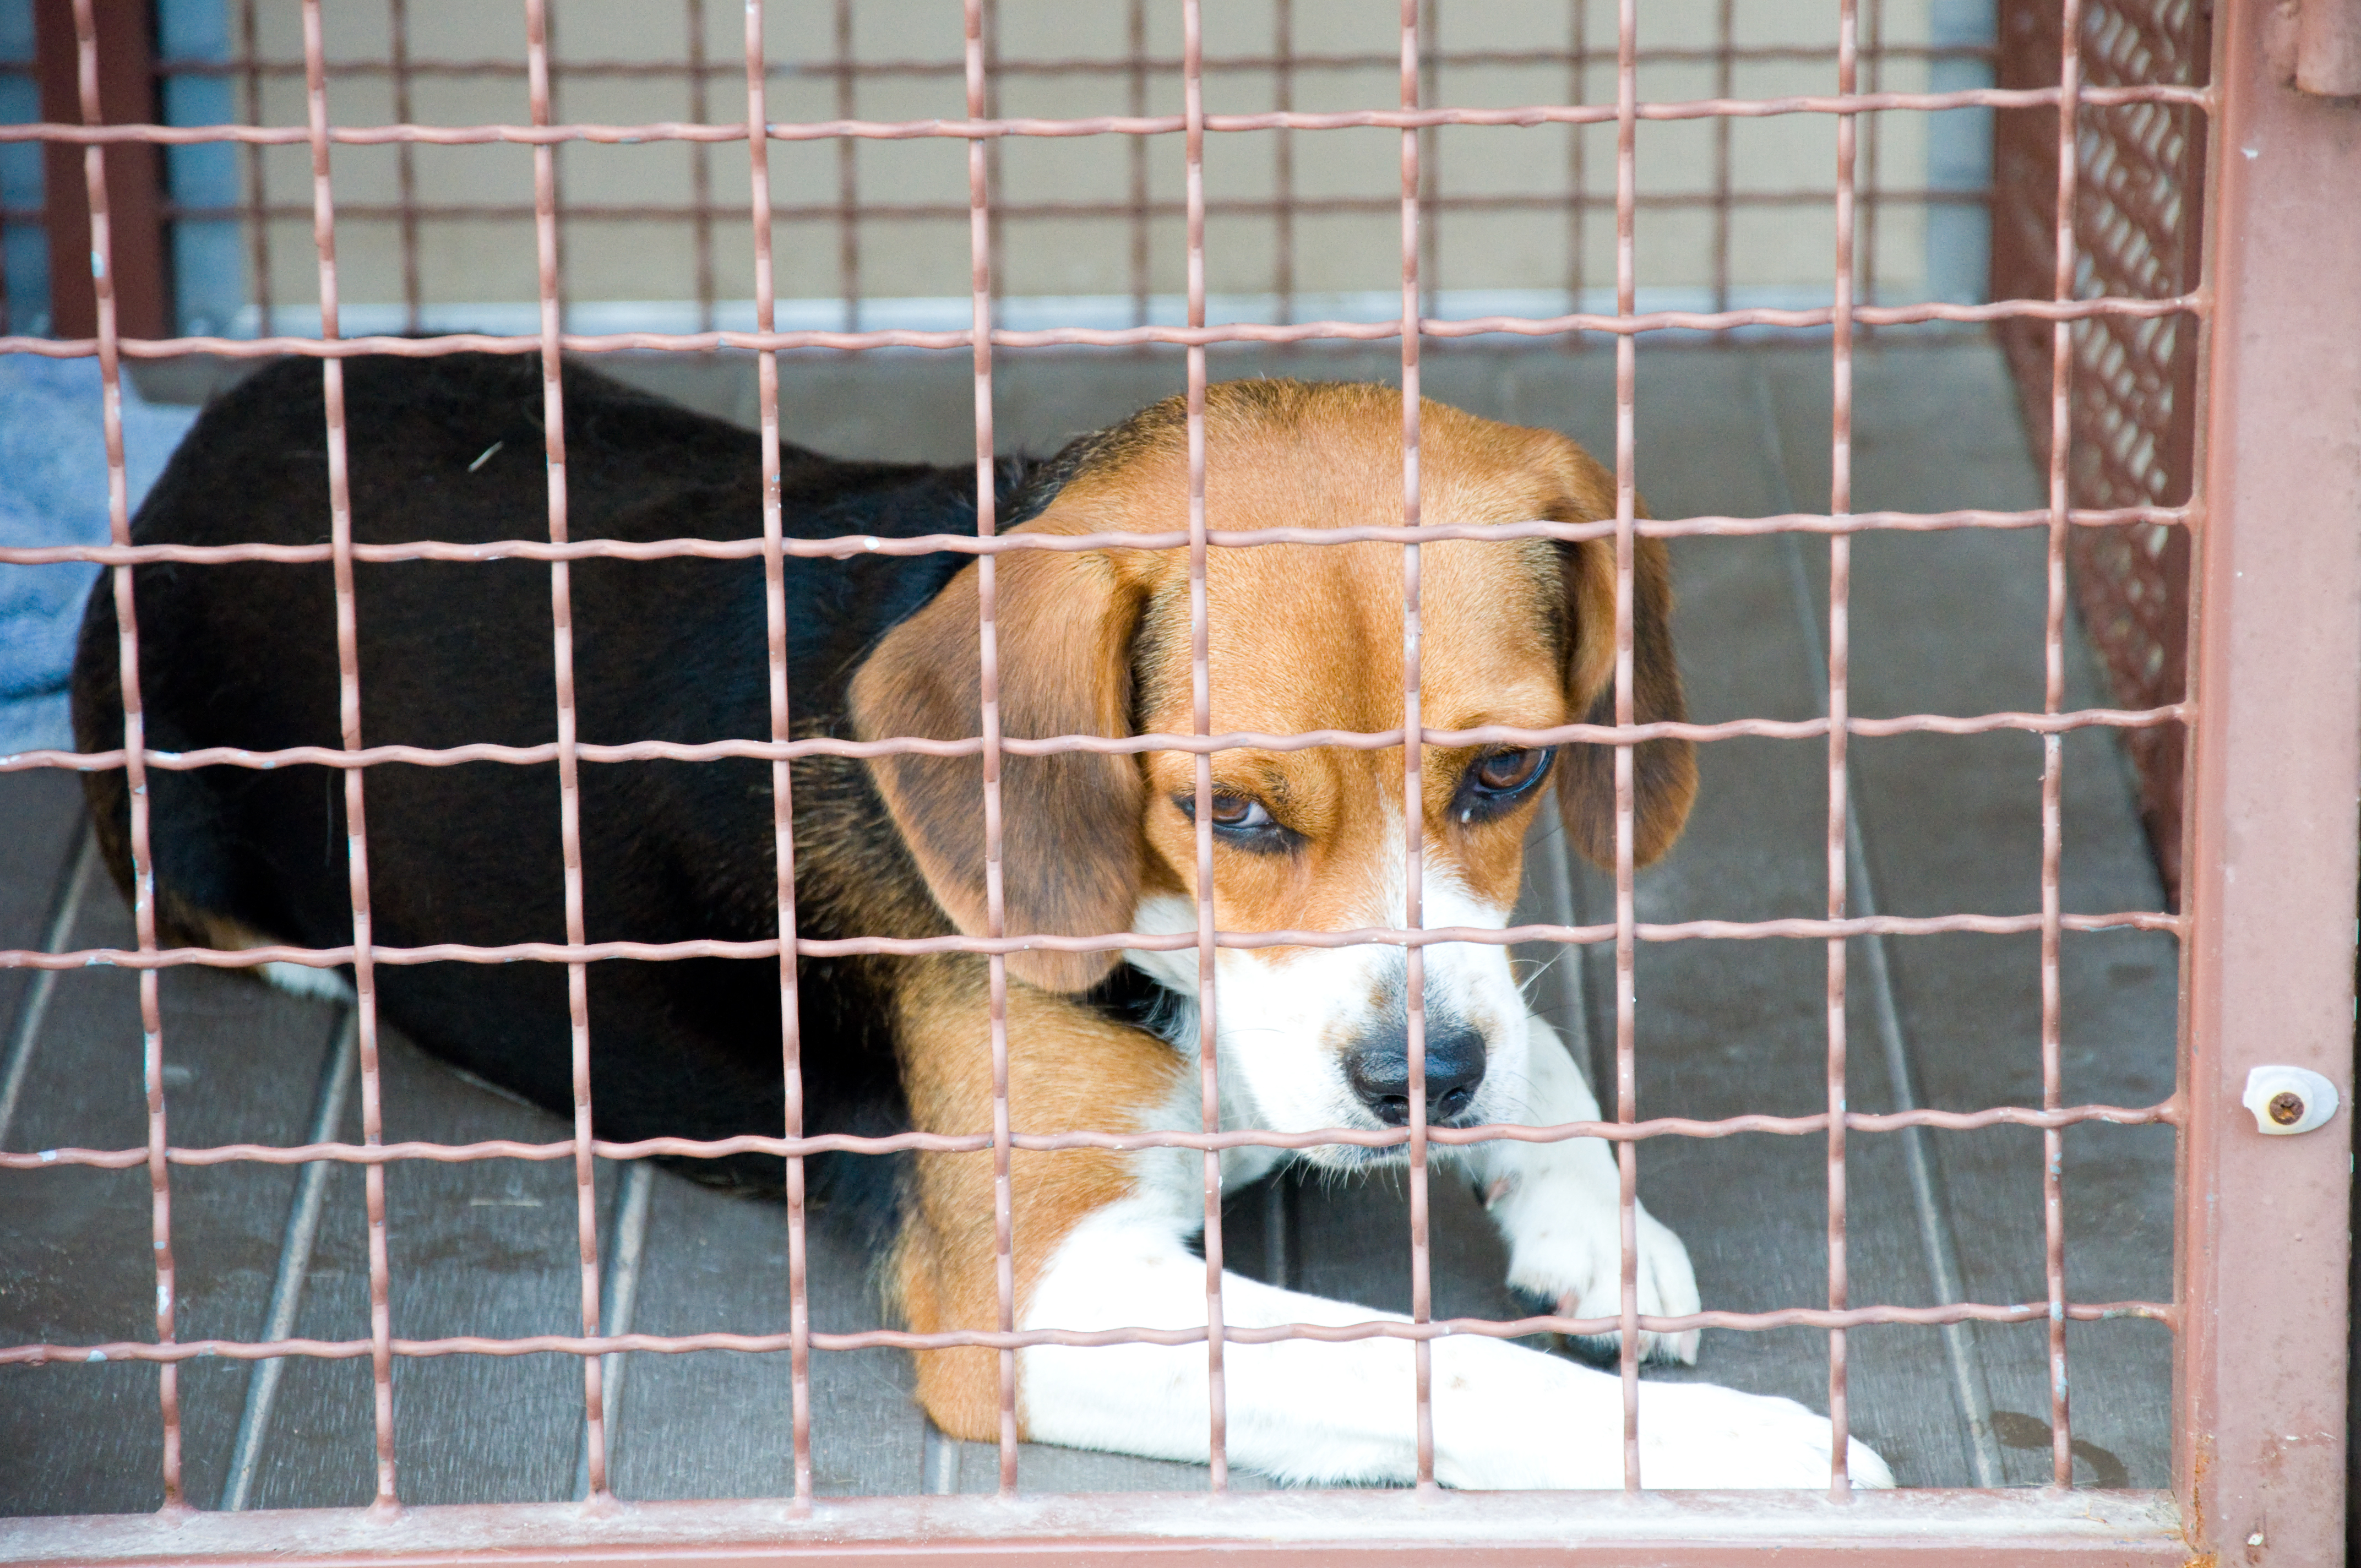 lonely_beagle_in_cage.jpg